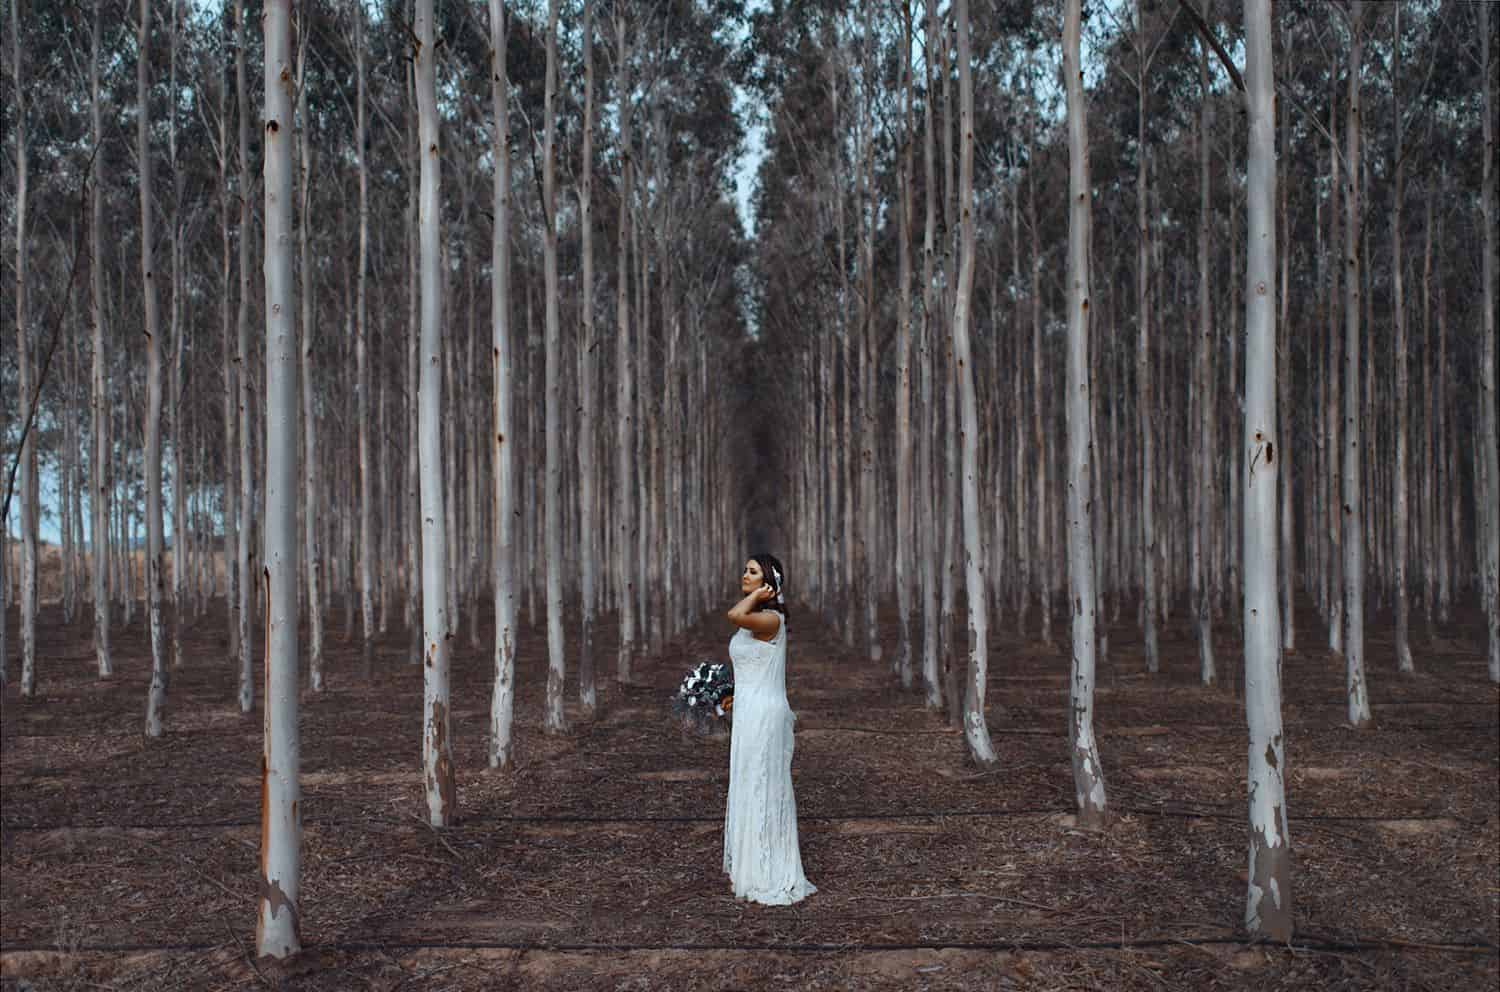 Authenticity Is Dead and Everything Is Wonderful: Bridal Portrait In The Forest - Oli Sansom